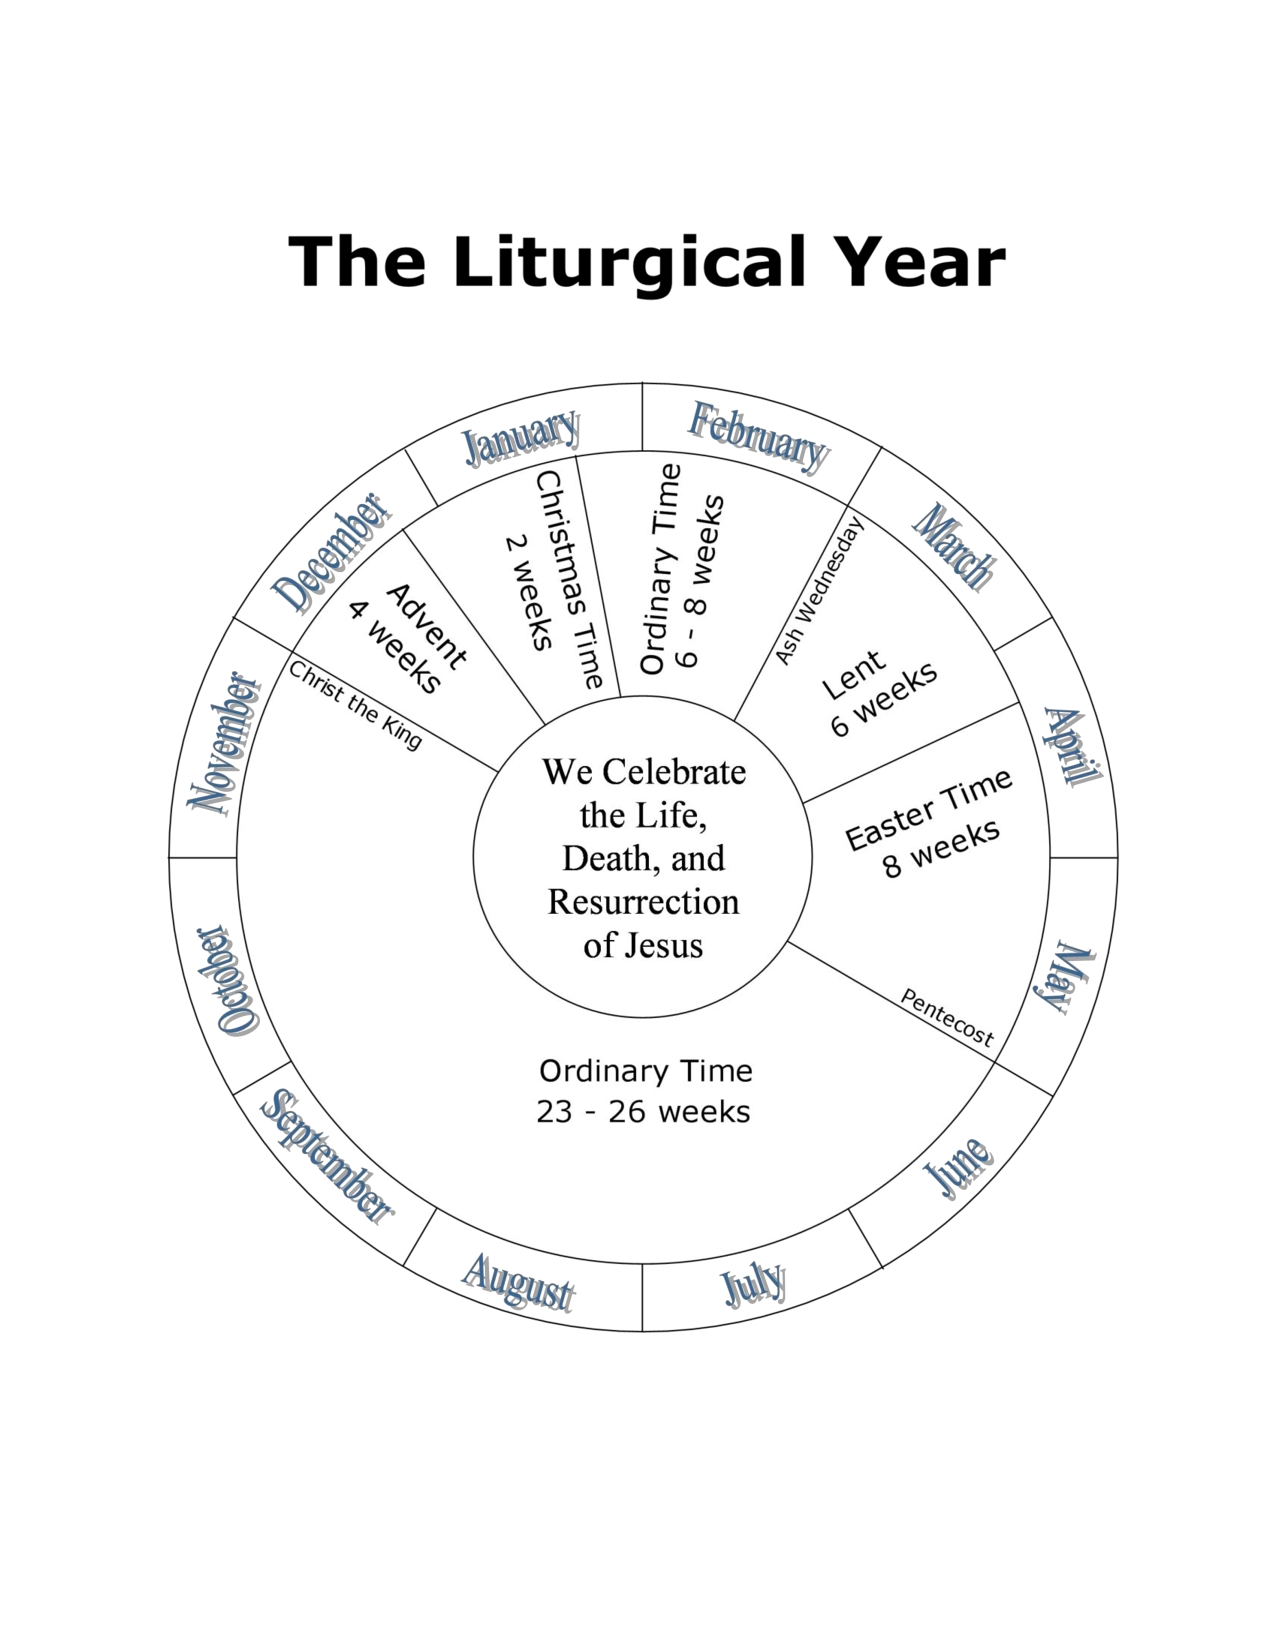 Pin On Liturgical Year intended for Episcopal Liturgical Calendar For Children